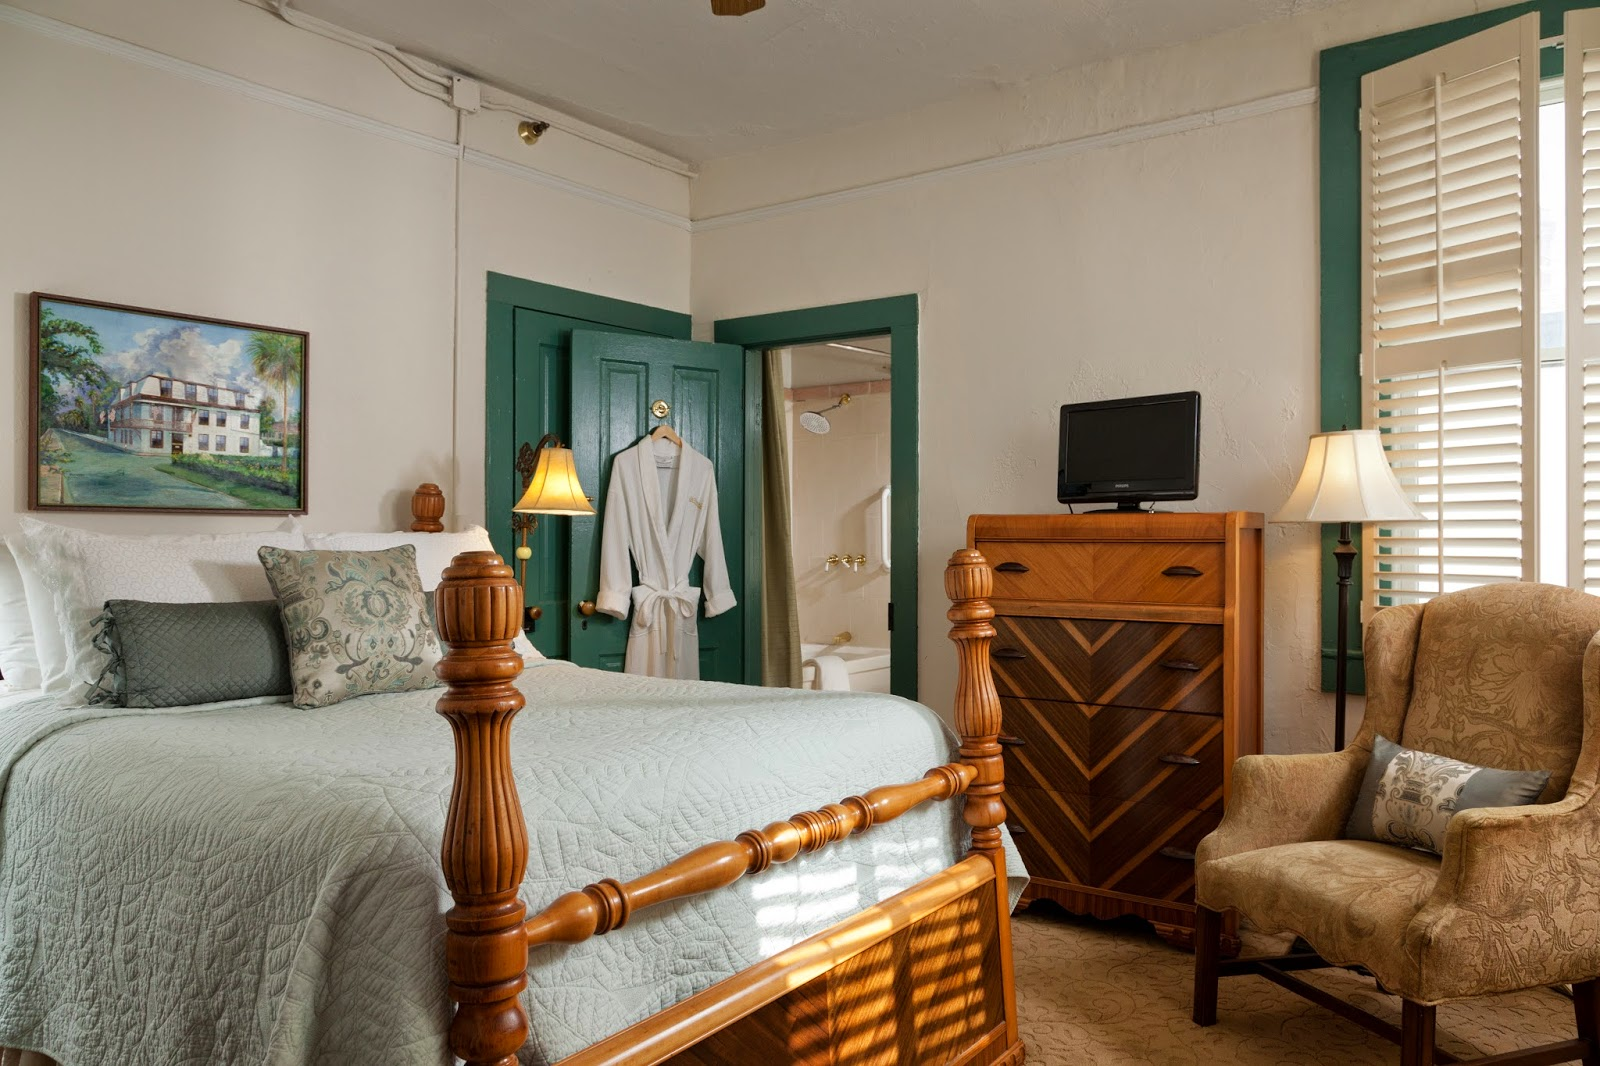 St Francis Inn Room of the Week: Elizabeth's Suite 3 stfrancis rooms elizabeth 09+x3+booking com St. Francis Inn St. Augustine Bed and Breakfast